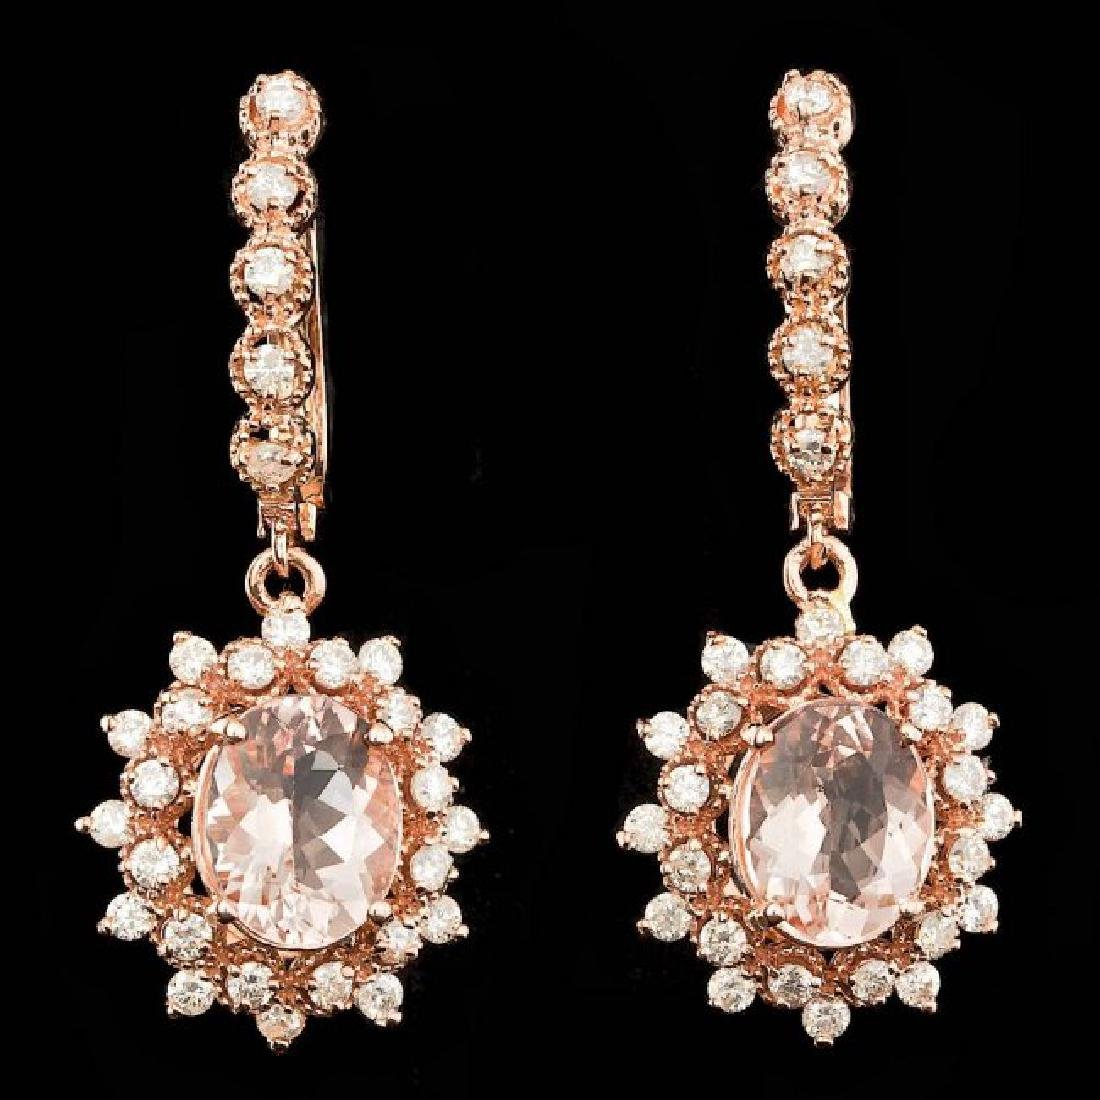 14k Rose 4.00ct Morganite 1.60ct Diamond Earrings